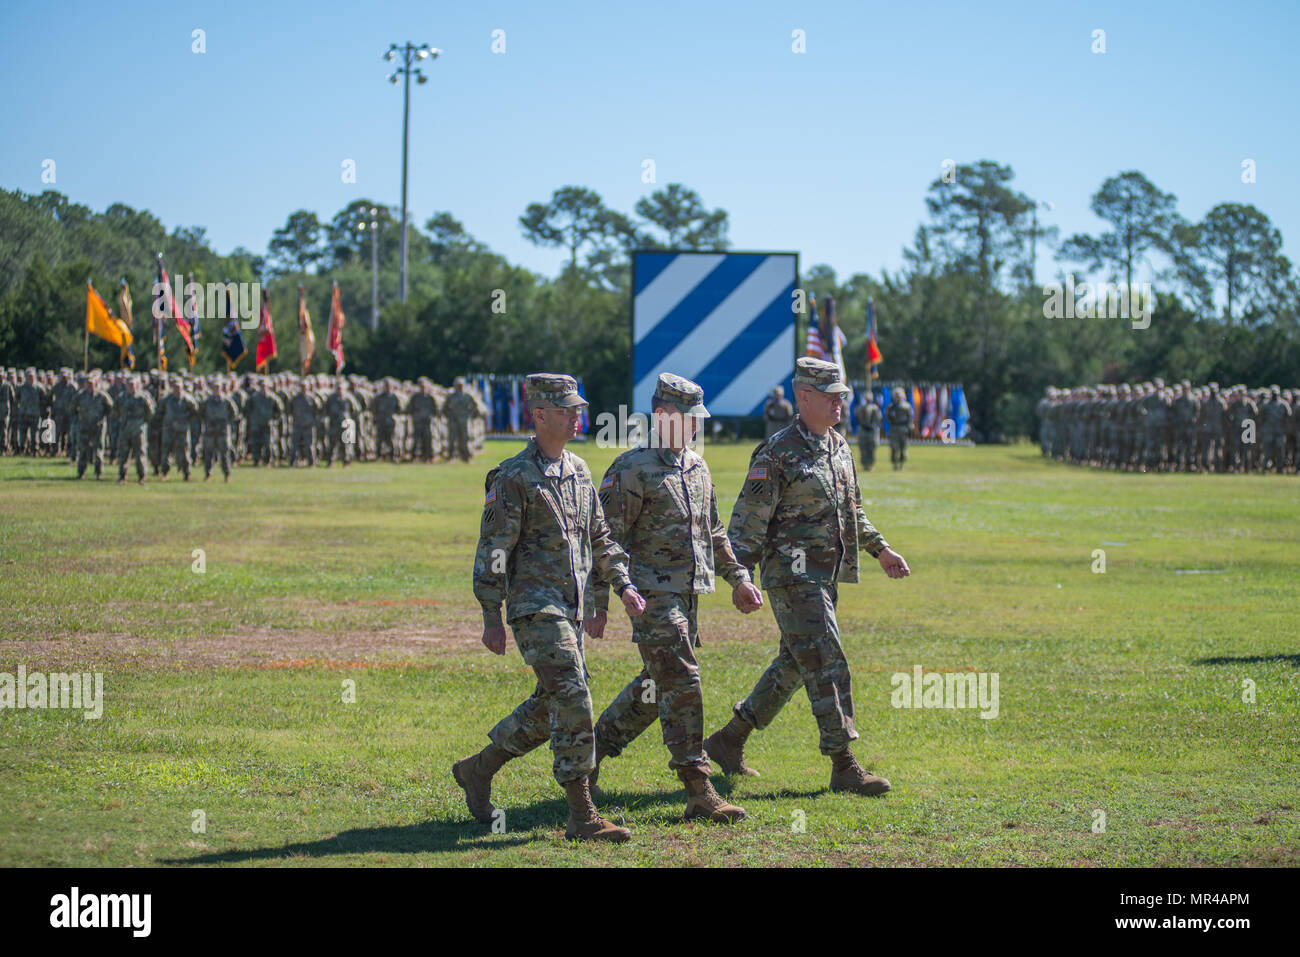 Maj. Gen. Leopoldo Quintas, left, incoming Commander of 3rd Infantry Division, Gen. Robert Abrams, center, Commander U.S. Forces Command, and Maj. Gen. James Rainey, right, outgoing Commanding General 3rd Infantry Division, complete the inspection of troops. The 3rd Infantry Division change of command ceremony was held on Cotrell Field at Fort Stewart, GA, May 8, 2017. (U.S. Army Photo by Lt. Col. Brian J. Fickel) Stock Photo